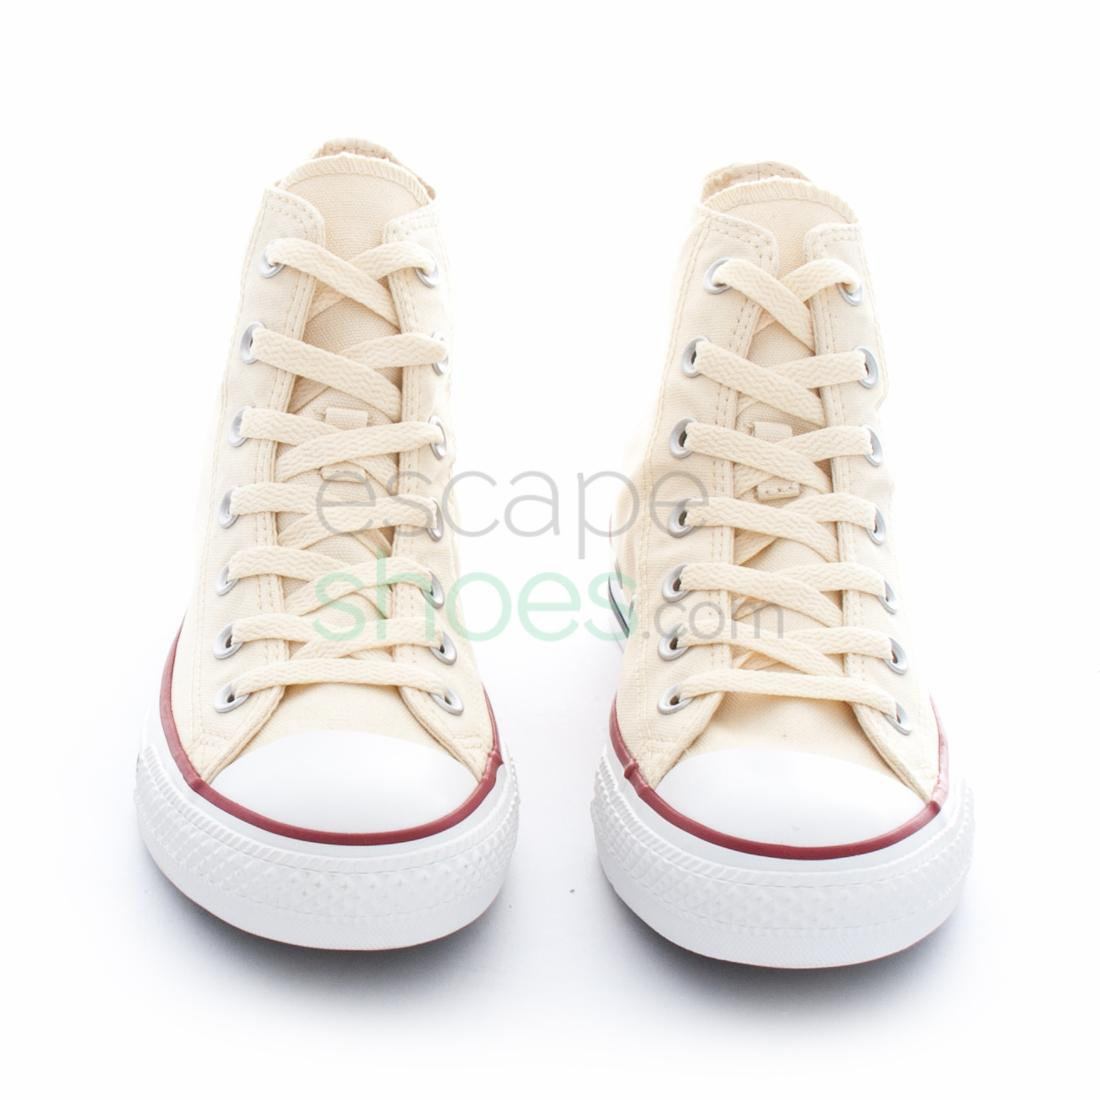 Men New Converse Chuck Taylor All Star High Top M9162C Natural White Shoes